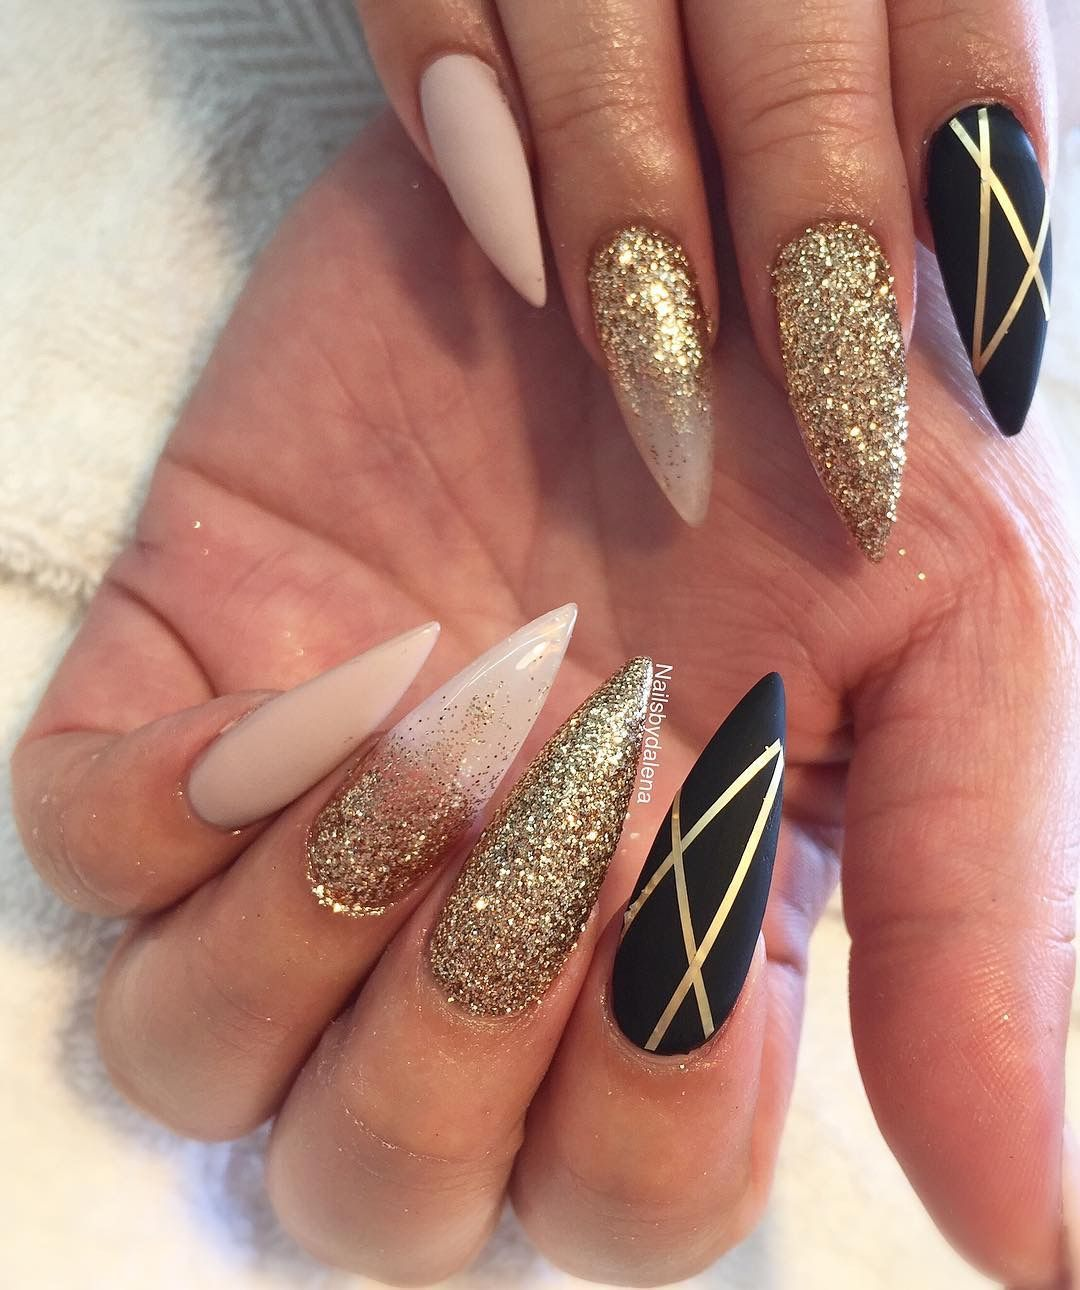 Pin By Alexis On Claws Pinterest